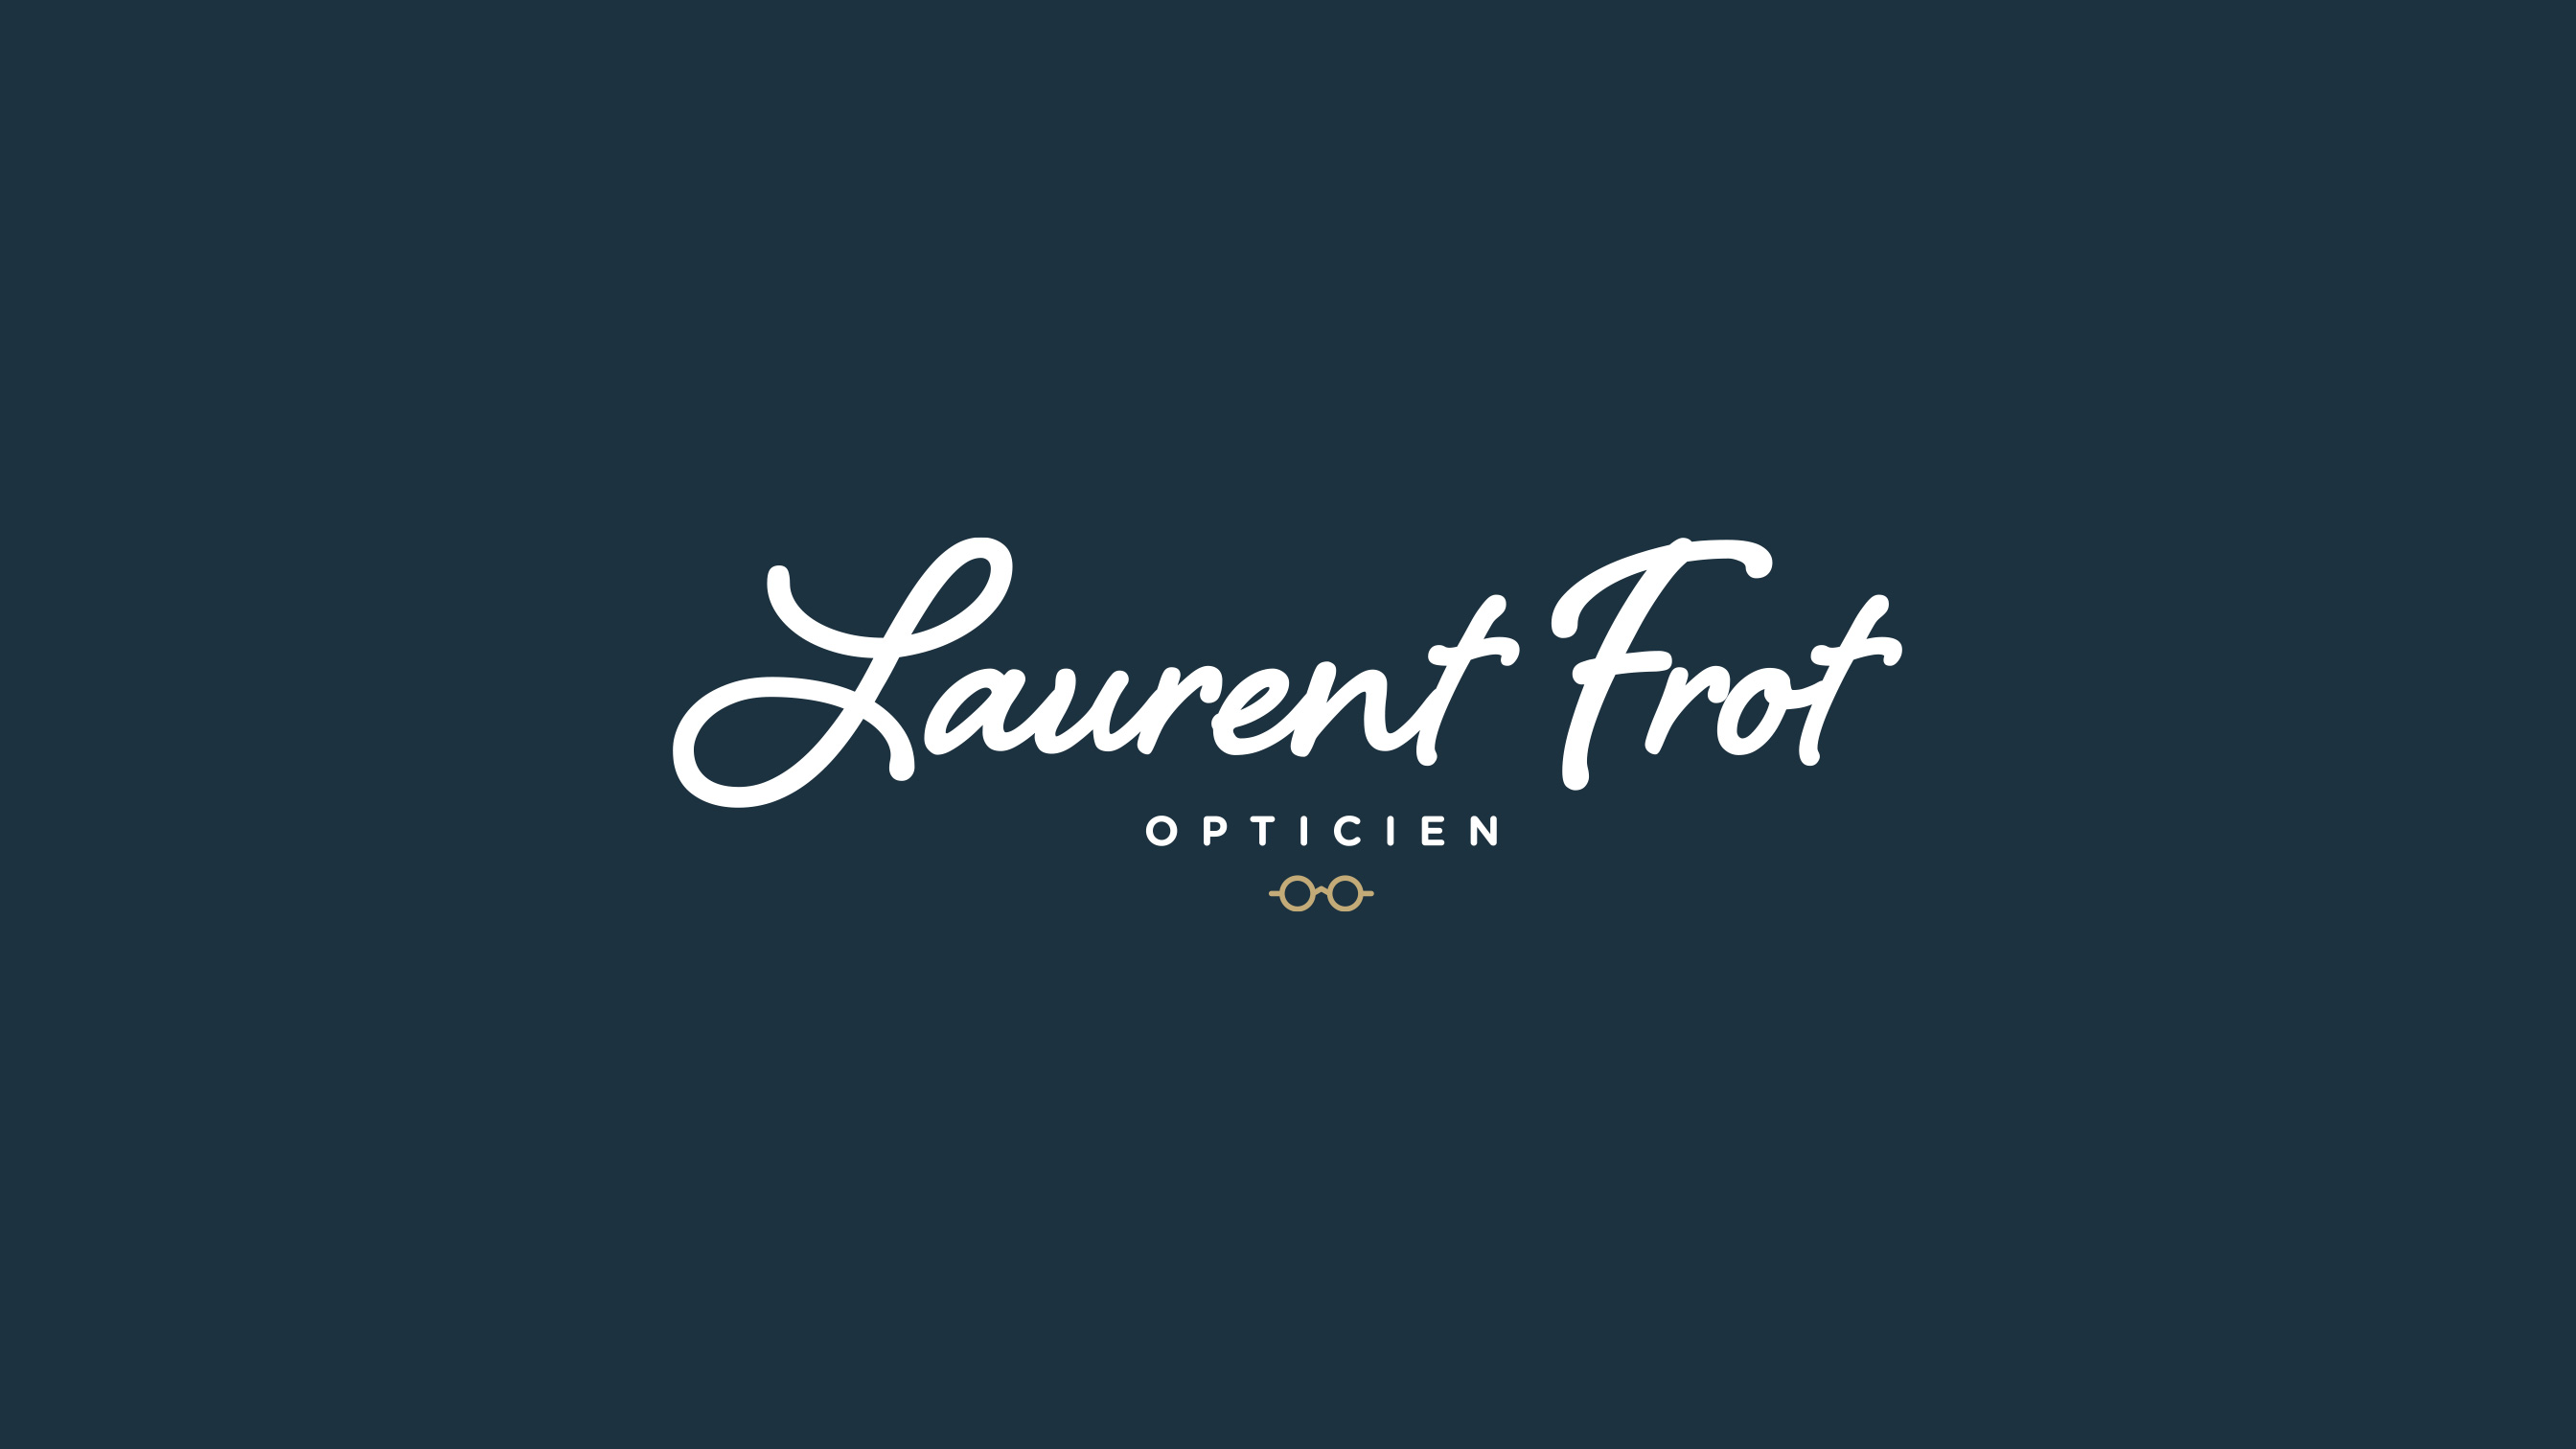 01-laurent-frot-opticien-pikteo-webdesign-graphic-design-freelance-paris-bruxelles-londres